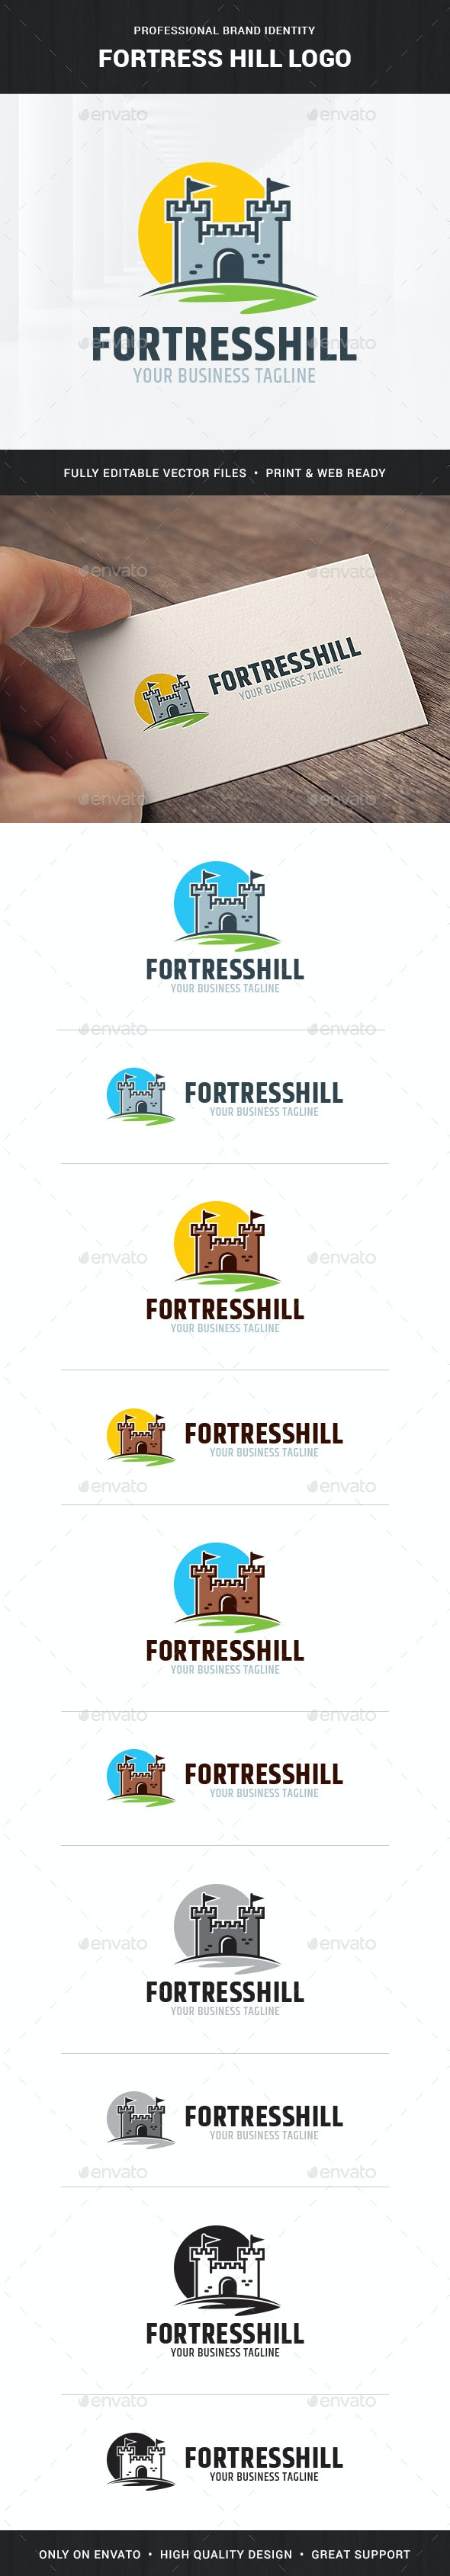 Fortress Hill Logo Template - Buildings Logo Templates